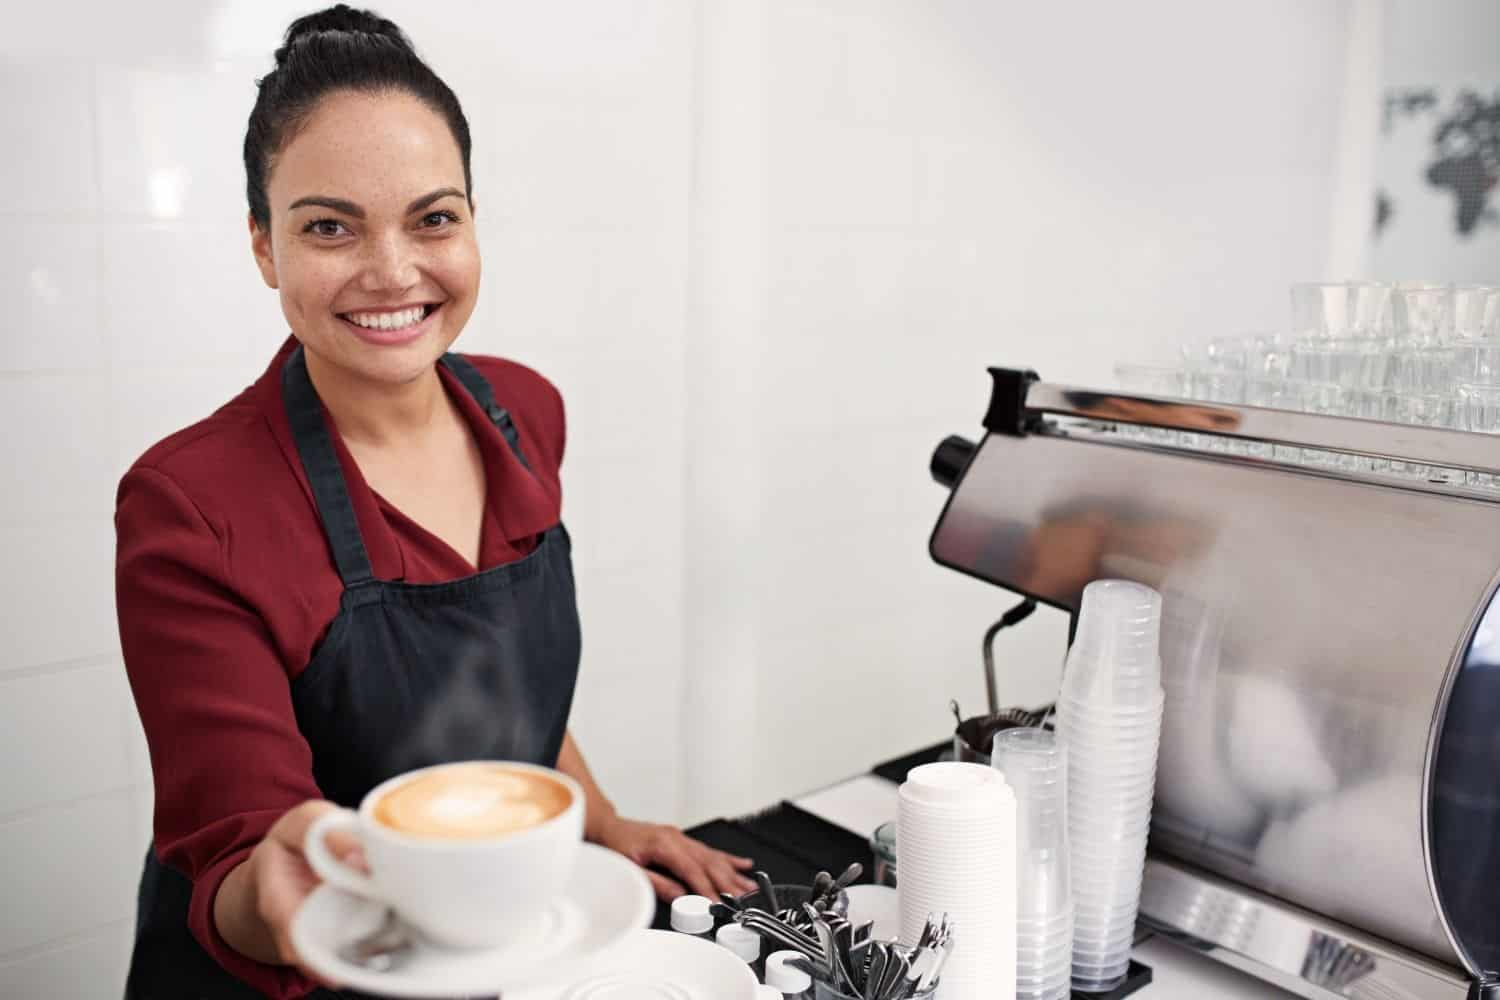 barista serving decaf coffee to a customer.